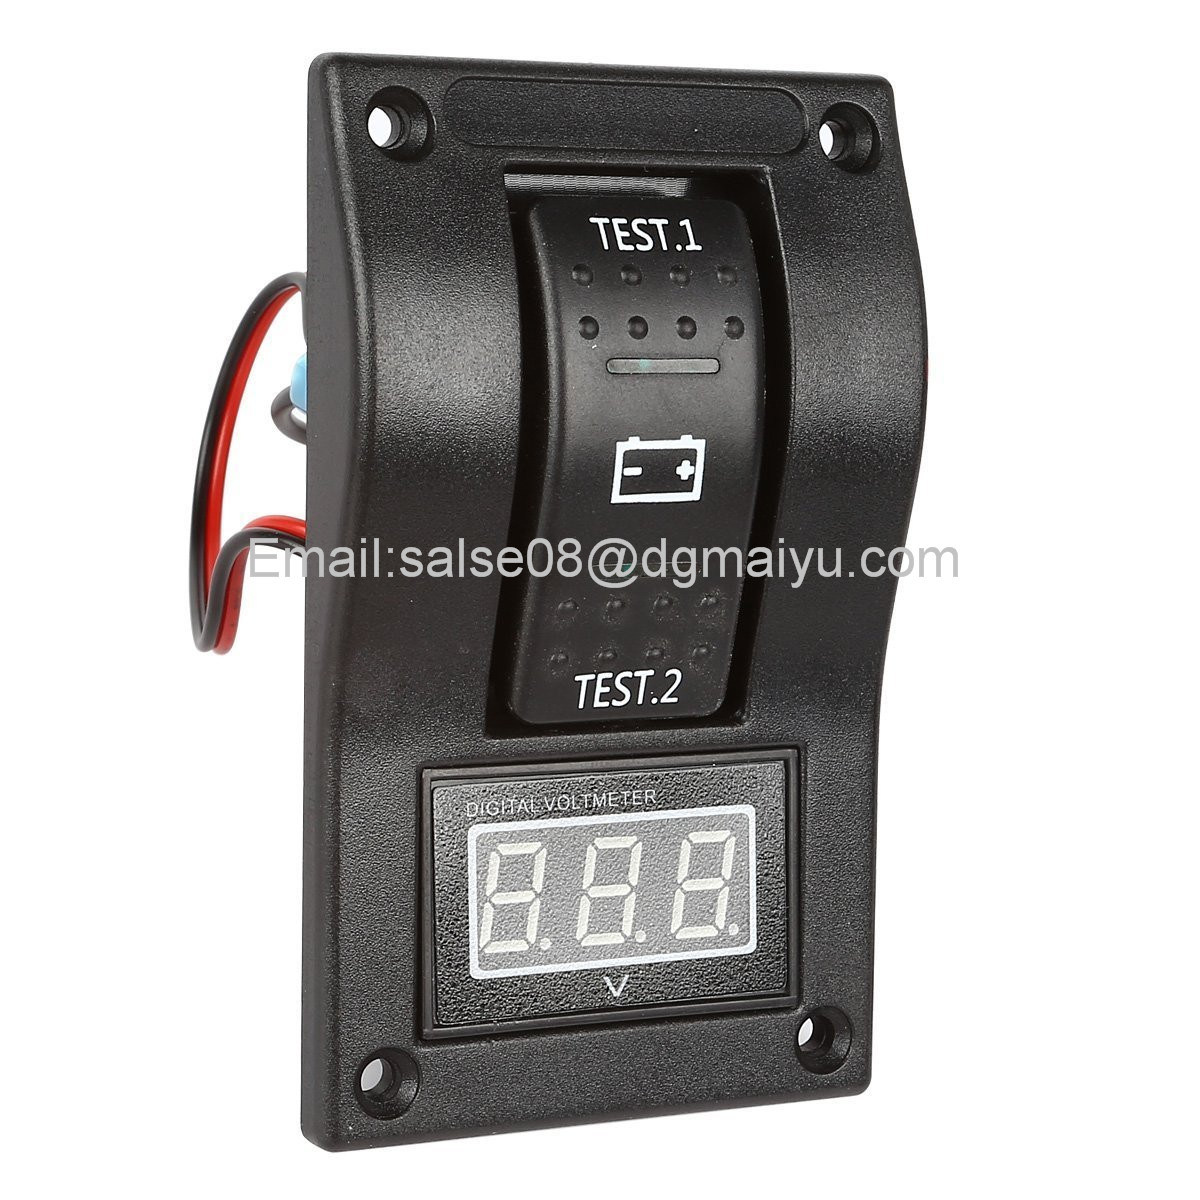 Voltmeter Battery Test Panel Rocker Switch Dpdt/on-off-on for Marine Boat RV ATV 5-30V DC